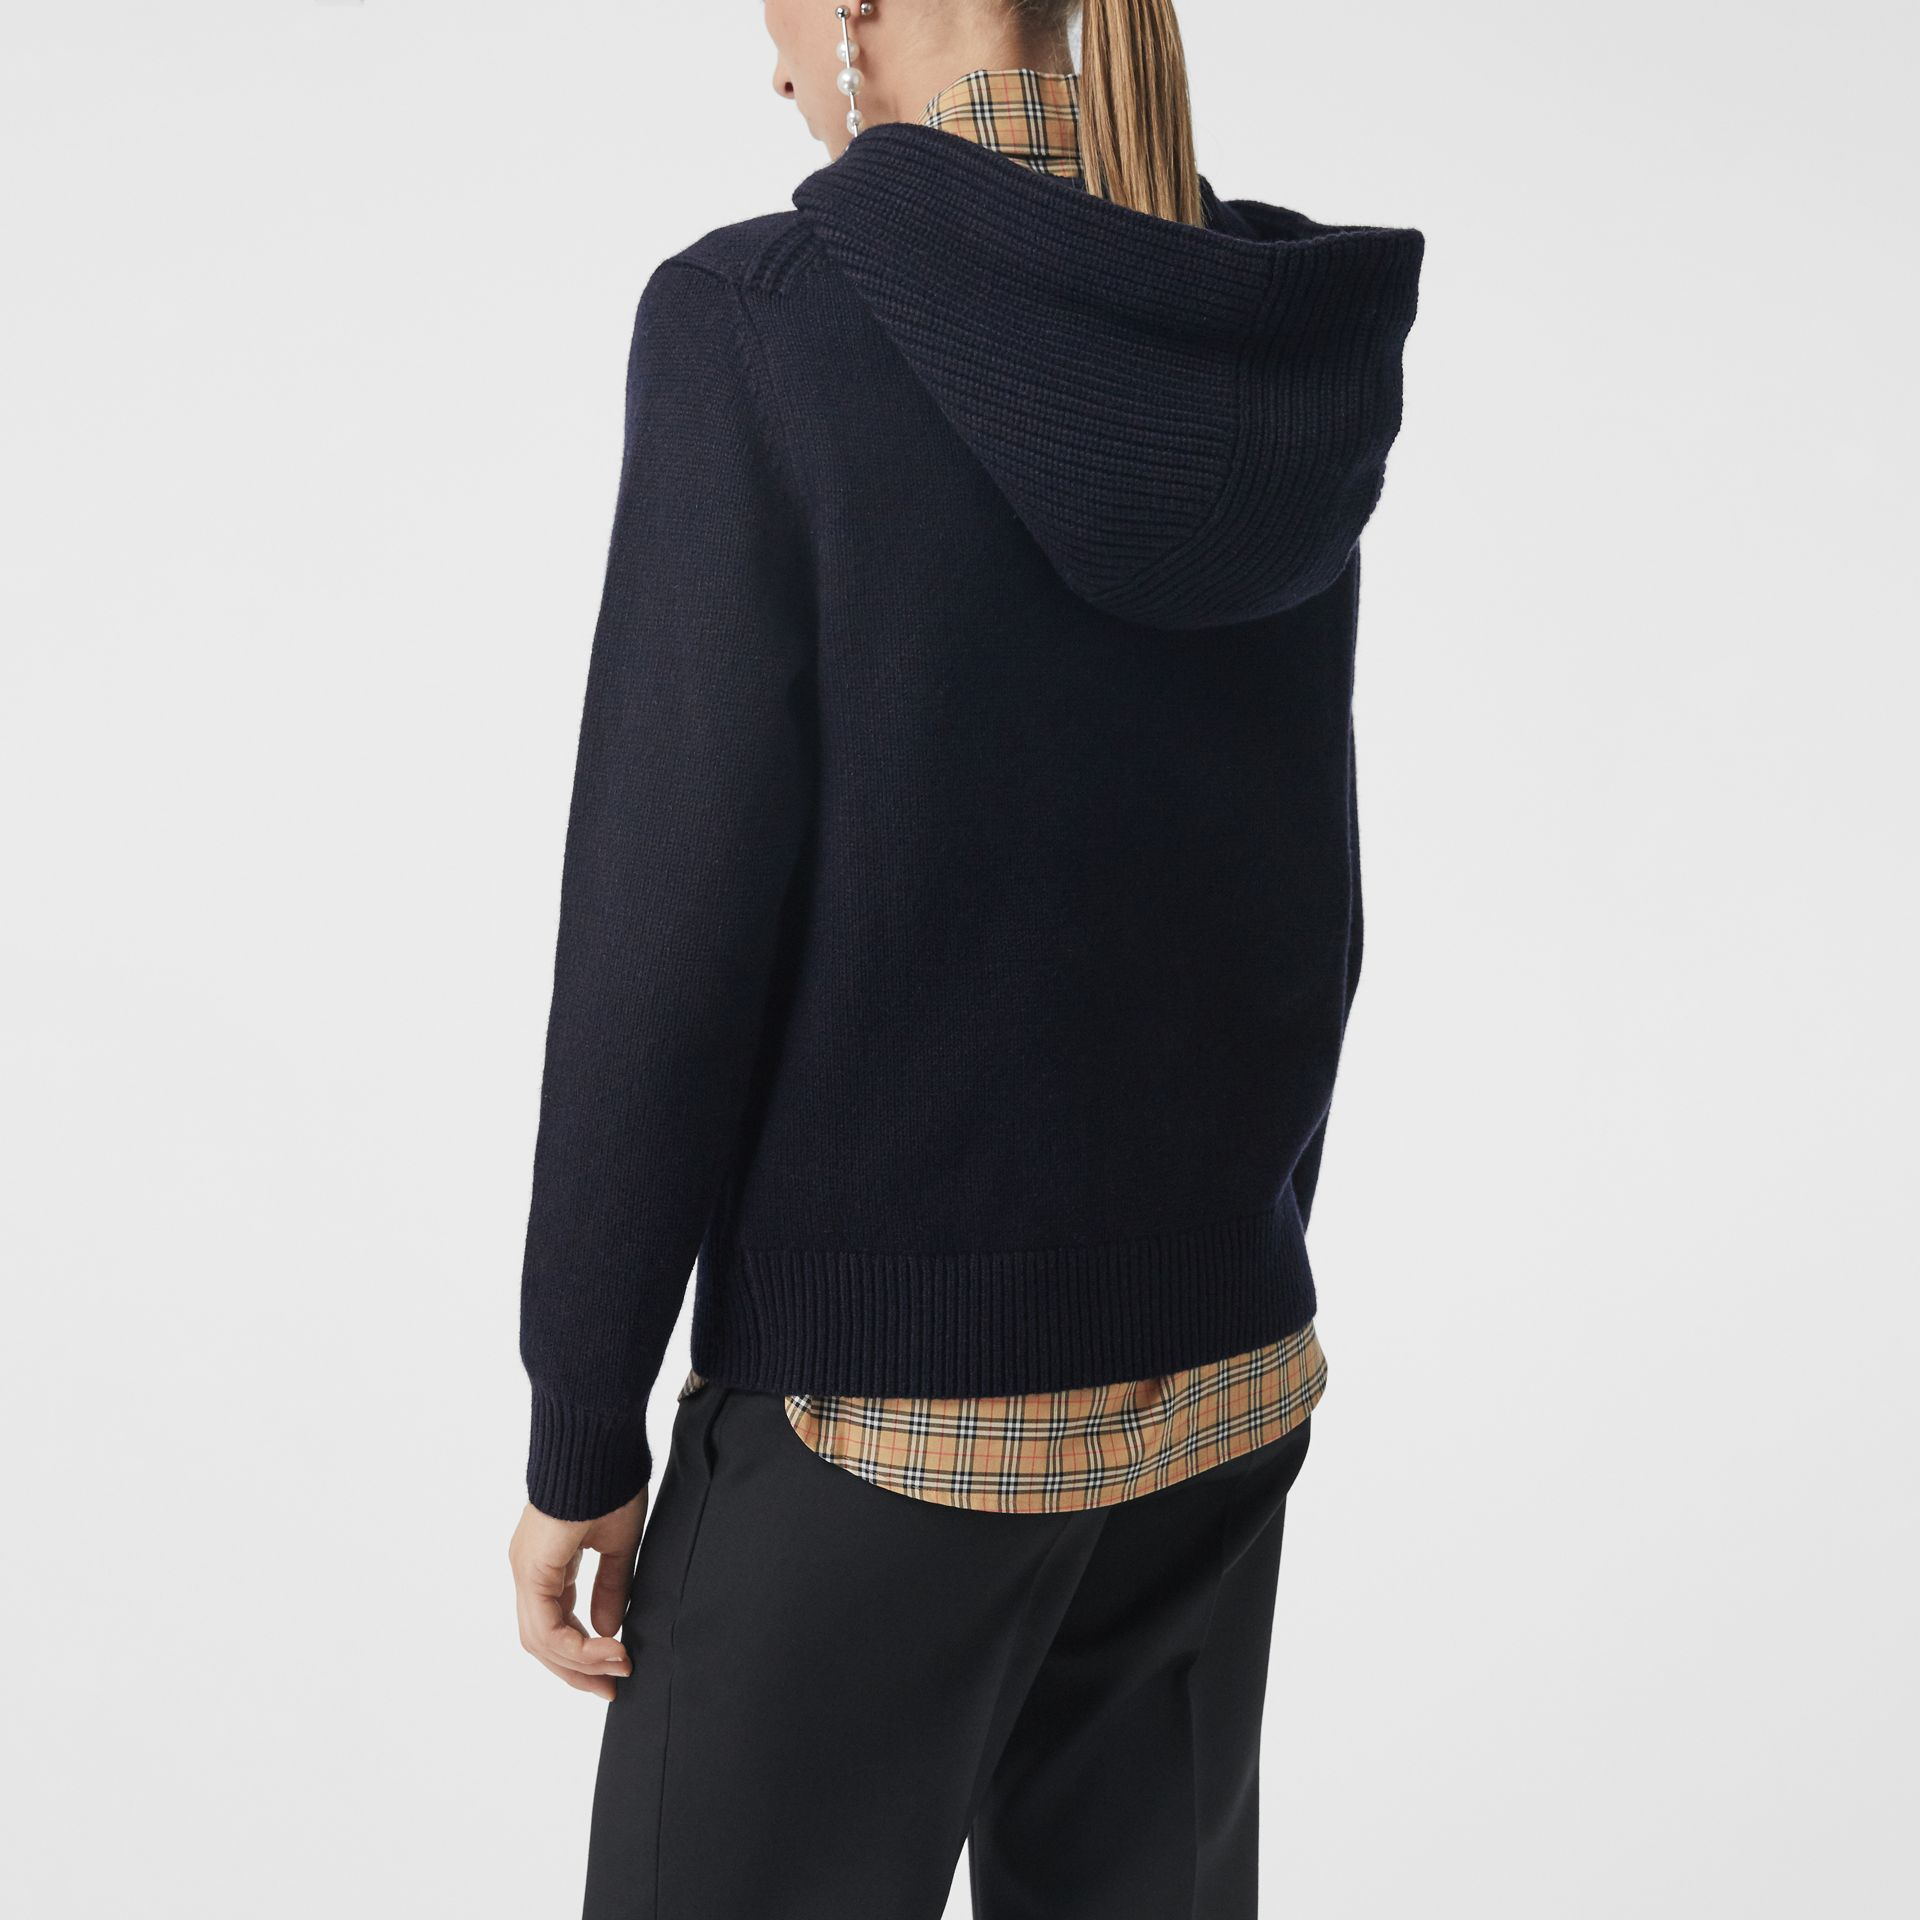 Embroidered Crest Cashmere Hooded Top in Navy - Women | Burberry - gallery image 2